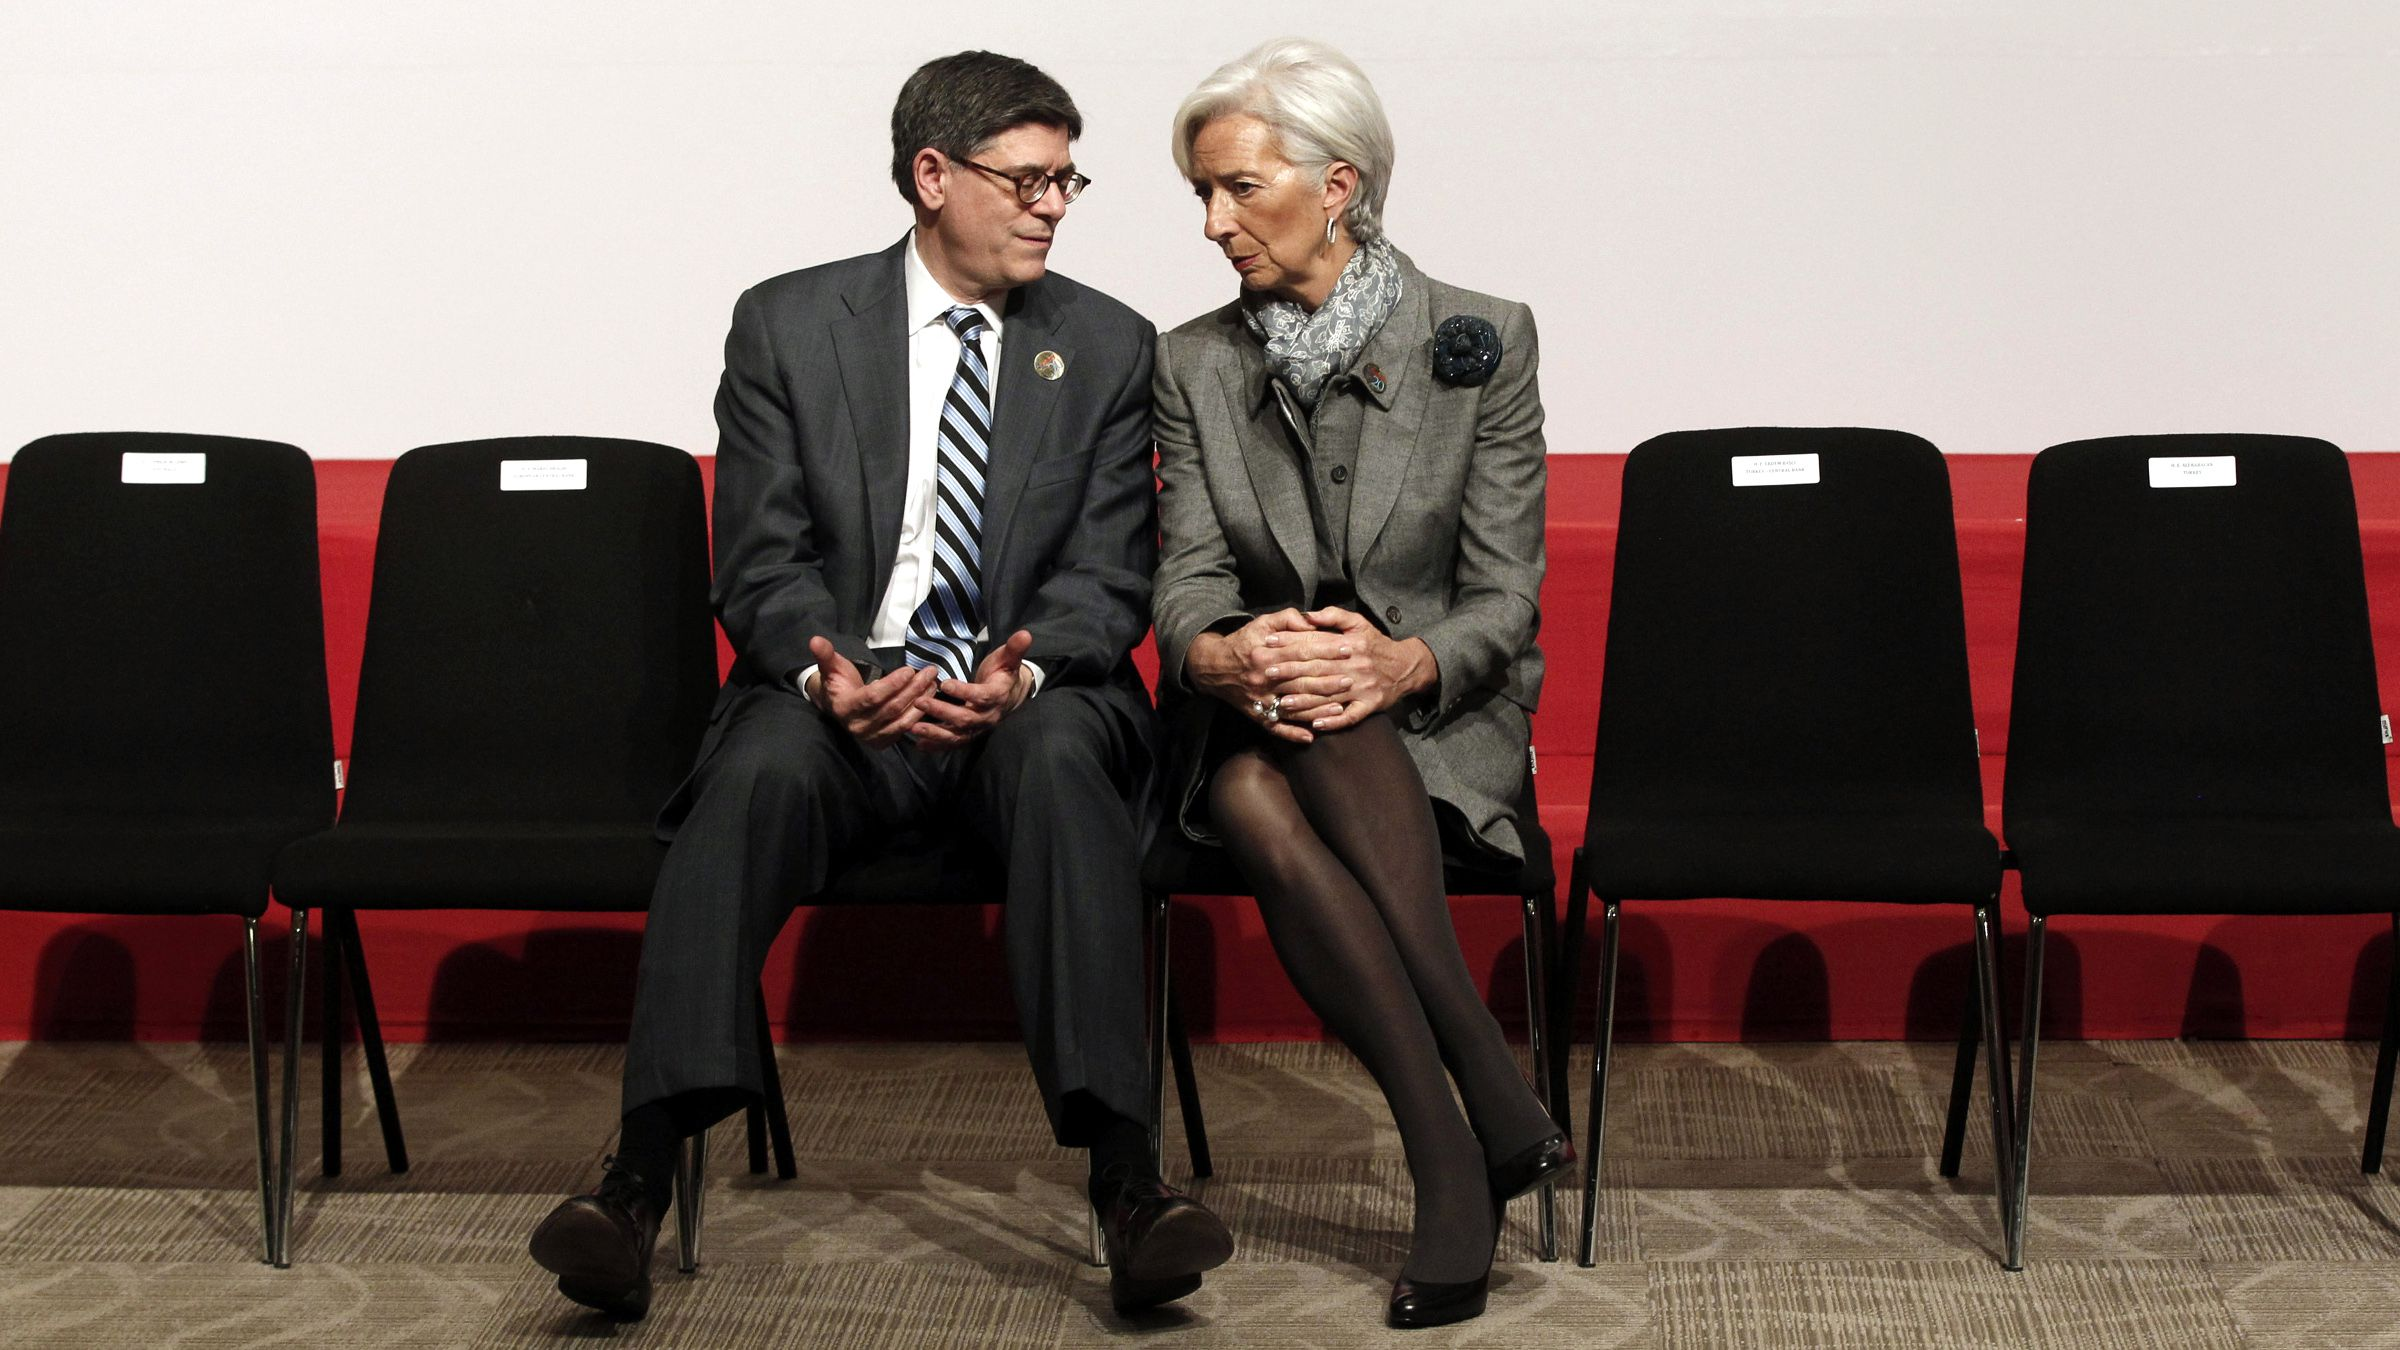 U.S. Treasury Secretary Jack Lew (L) talks with International Monetary Fund (IMF) Managing Director Christine Lagarde after a family photo during the G20 finance ministers and central bank governors meeting in Istanbul February 10, 2015.